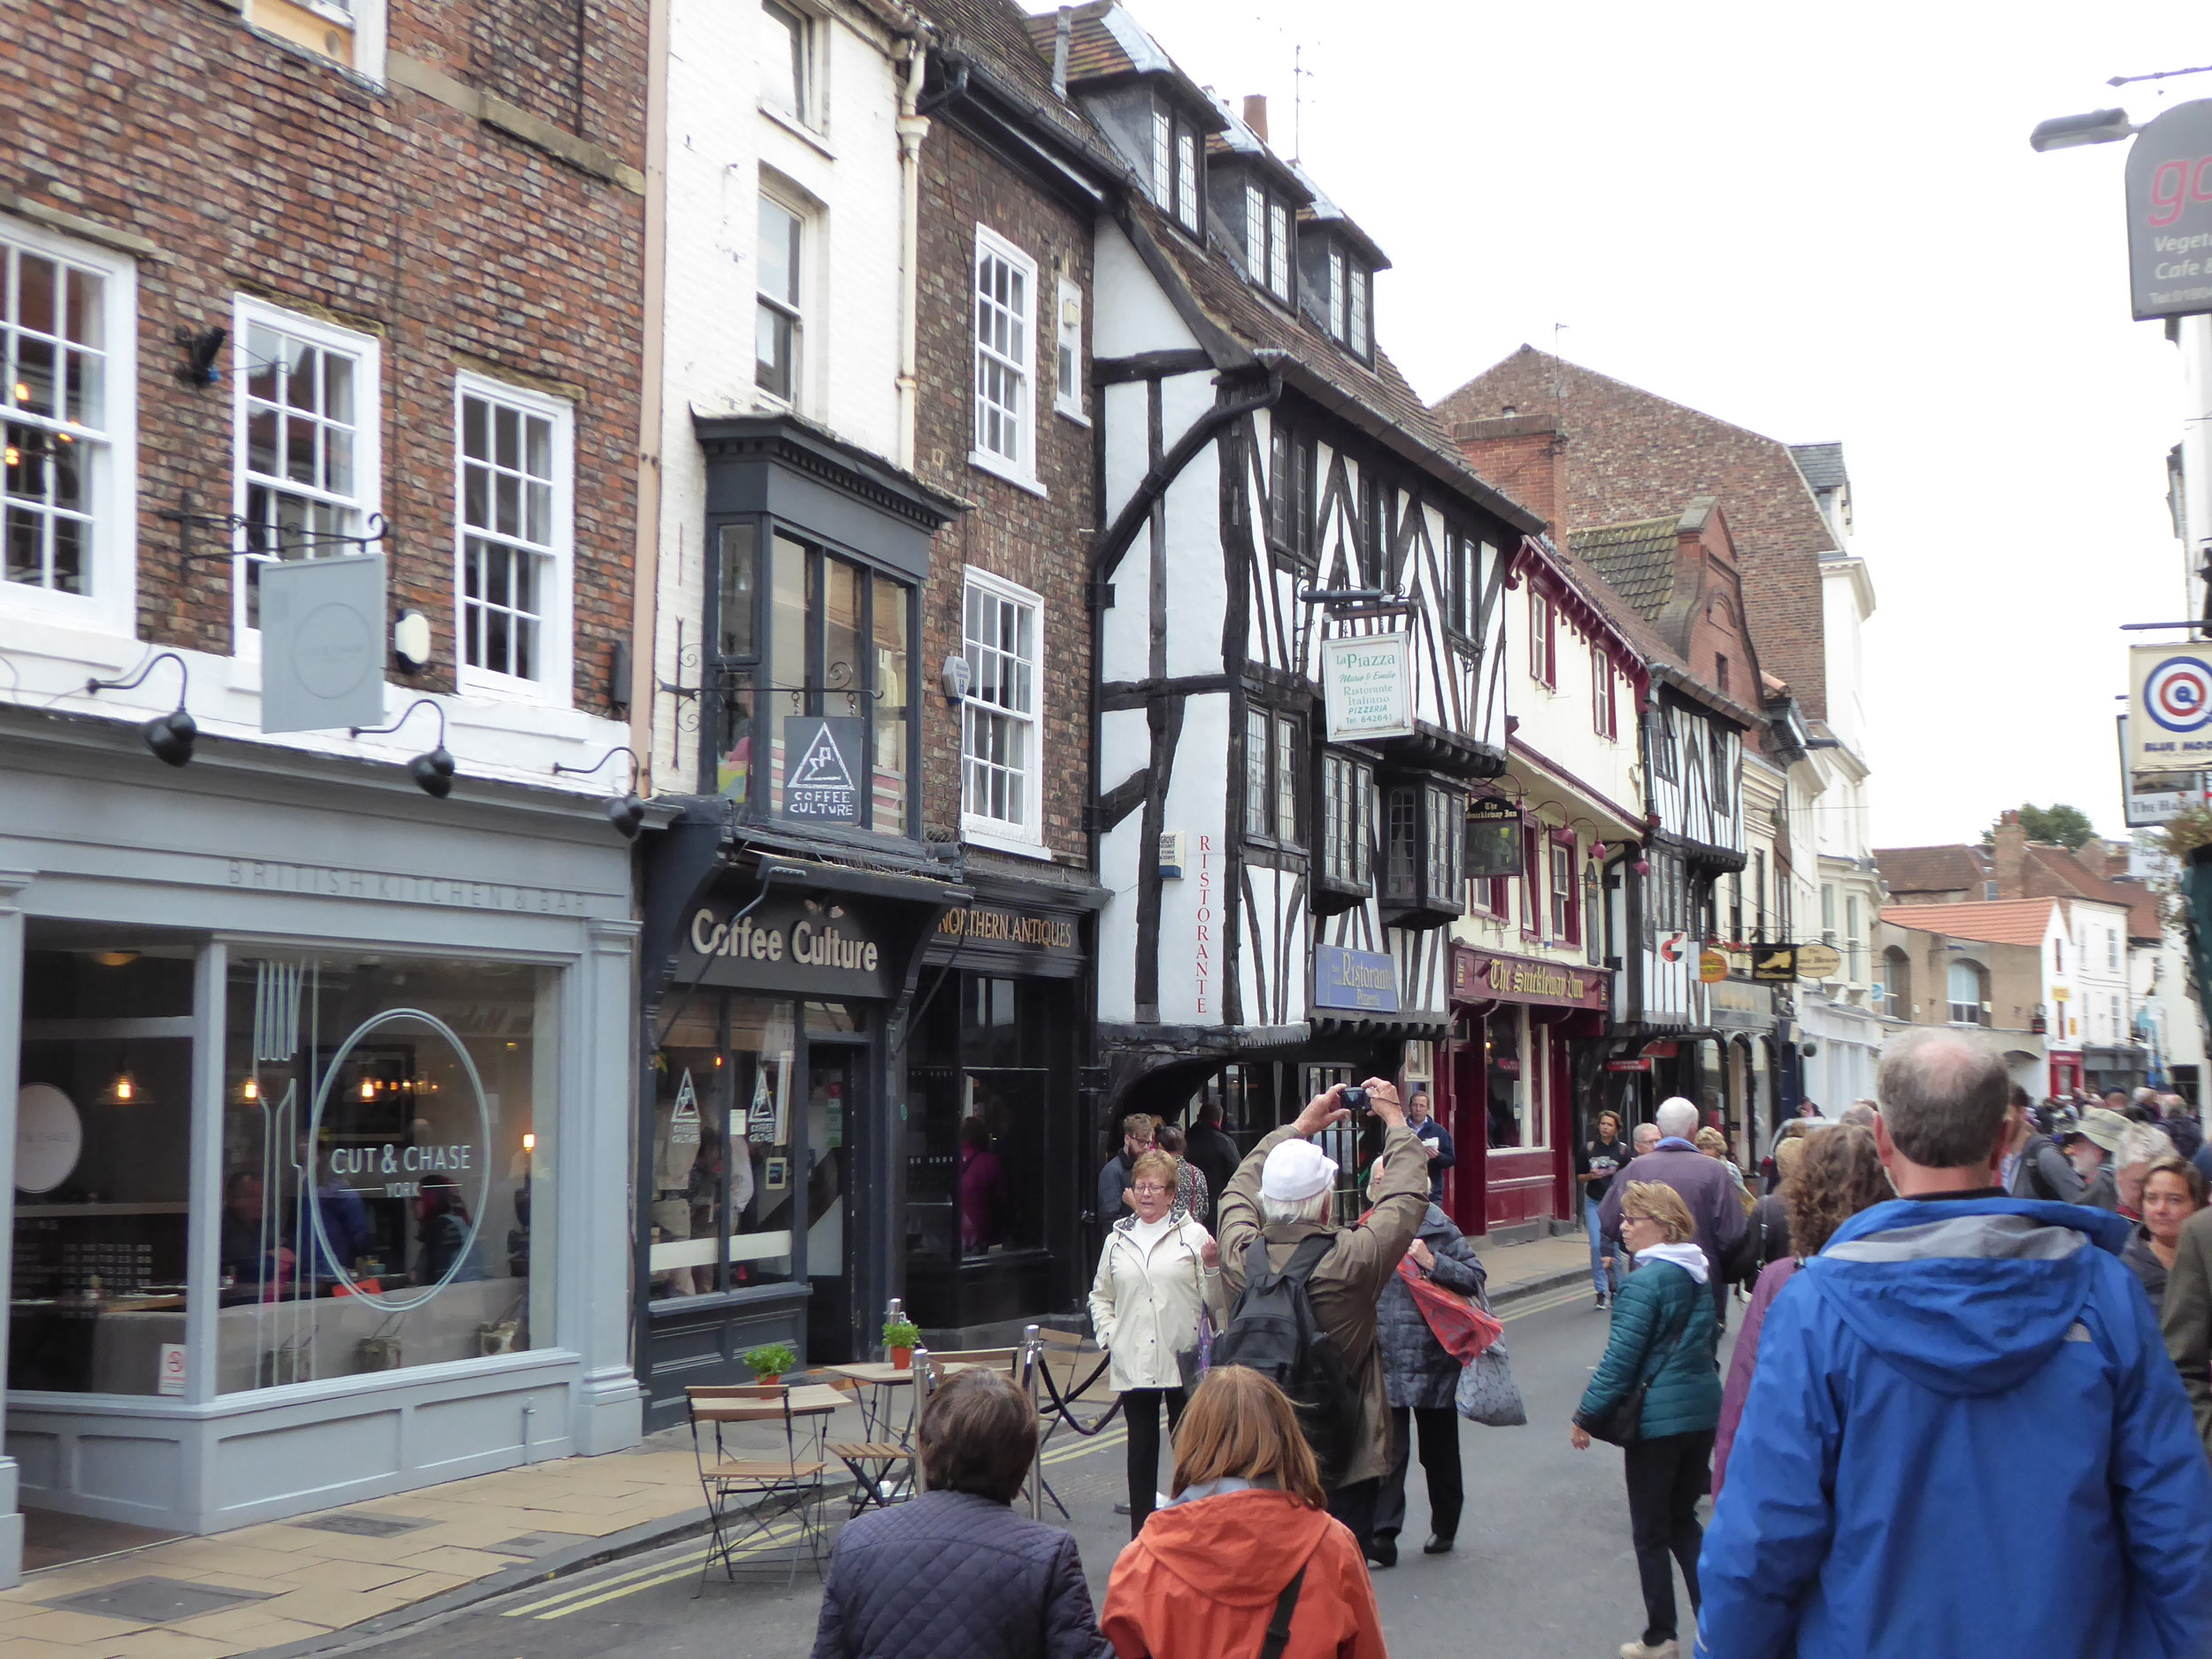 We wish we had more time to spend in the fascinating city of York.